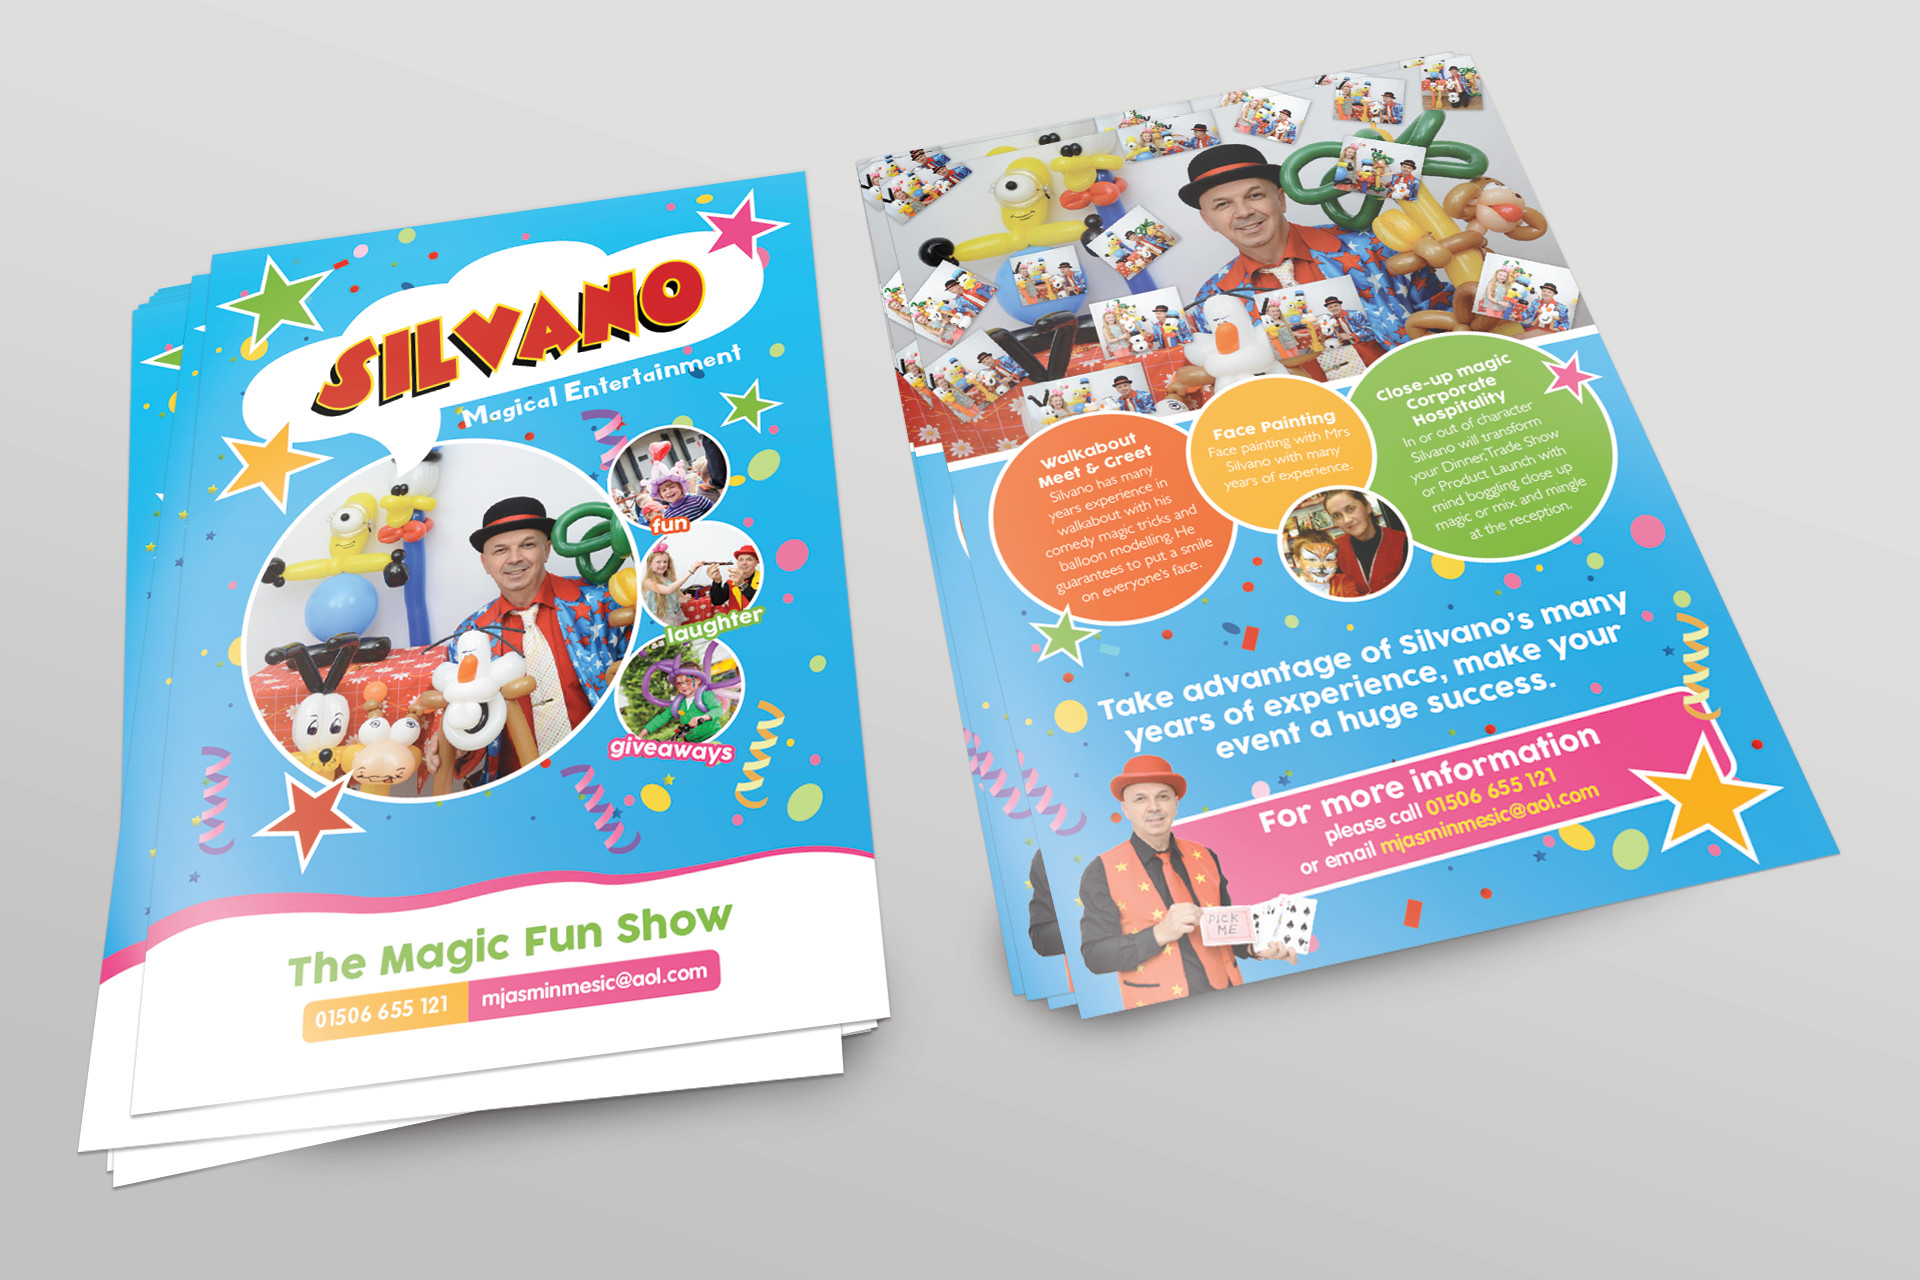 Flyer-design-Glasgow-Edinburgh-West-Lothian-23.jpg